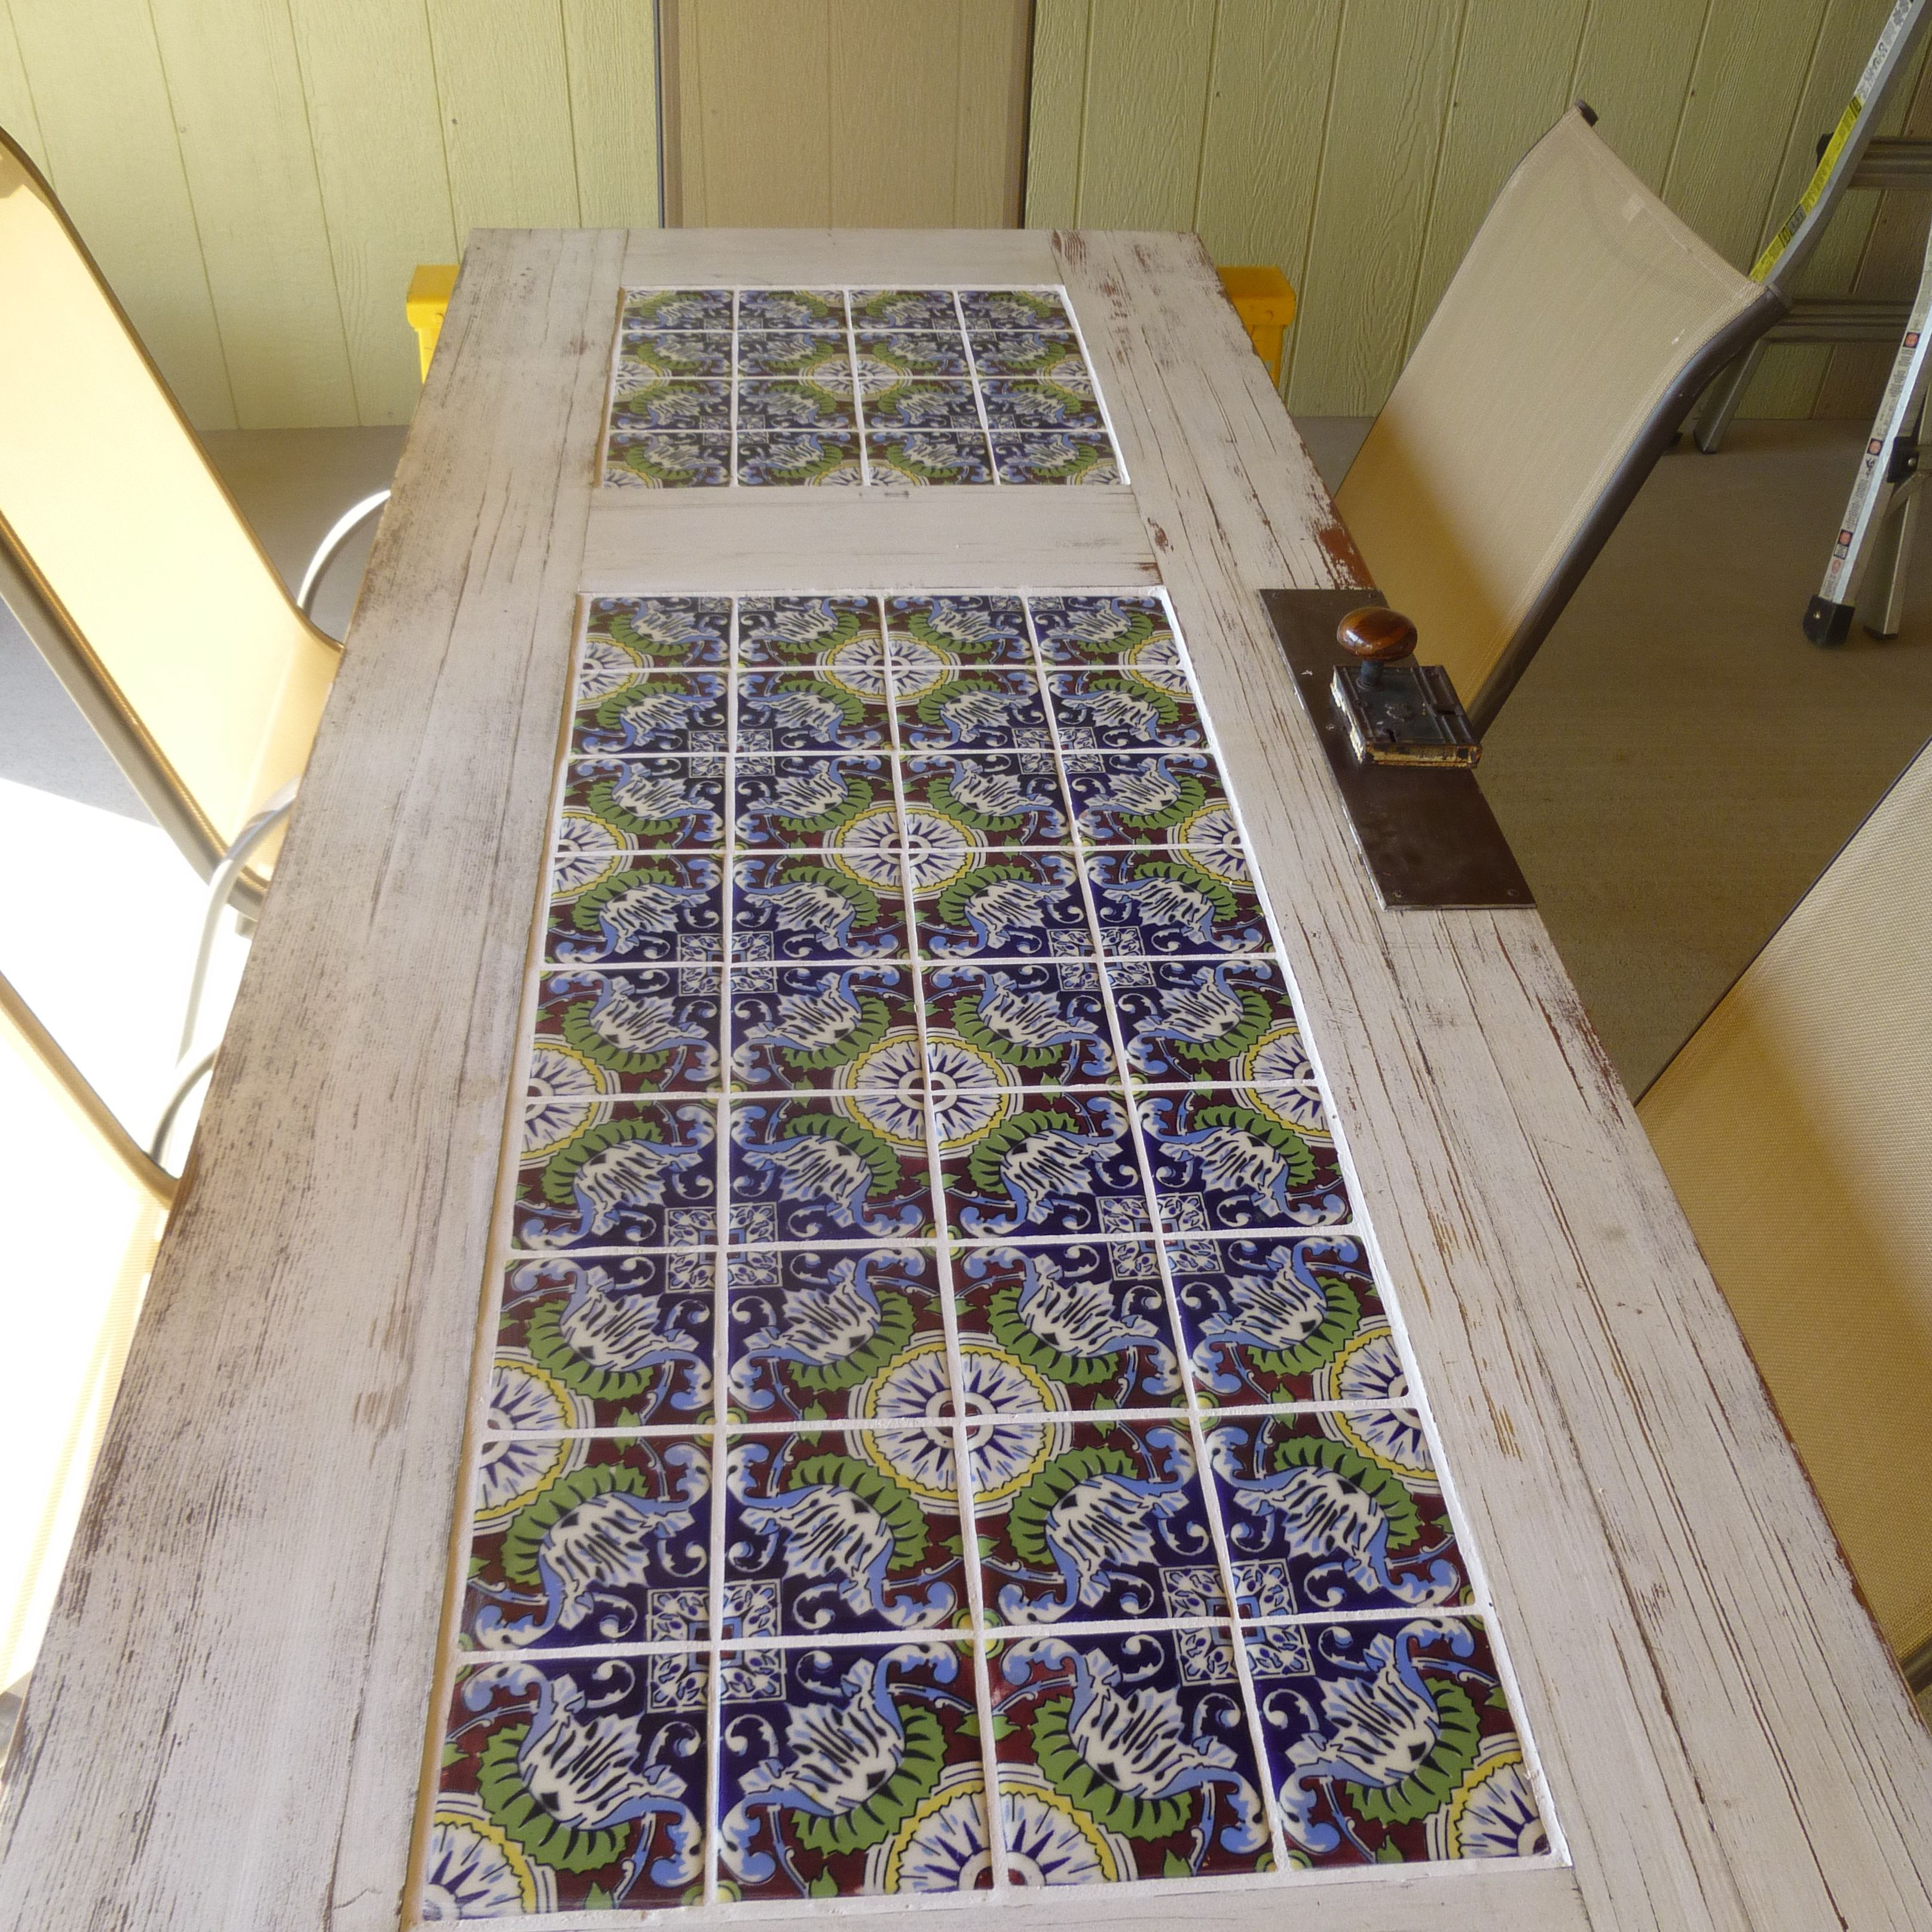 Diy Patio Door Installation: Tile And A Old Door = Patio Table